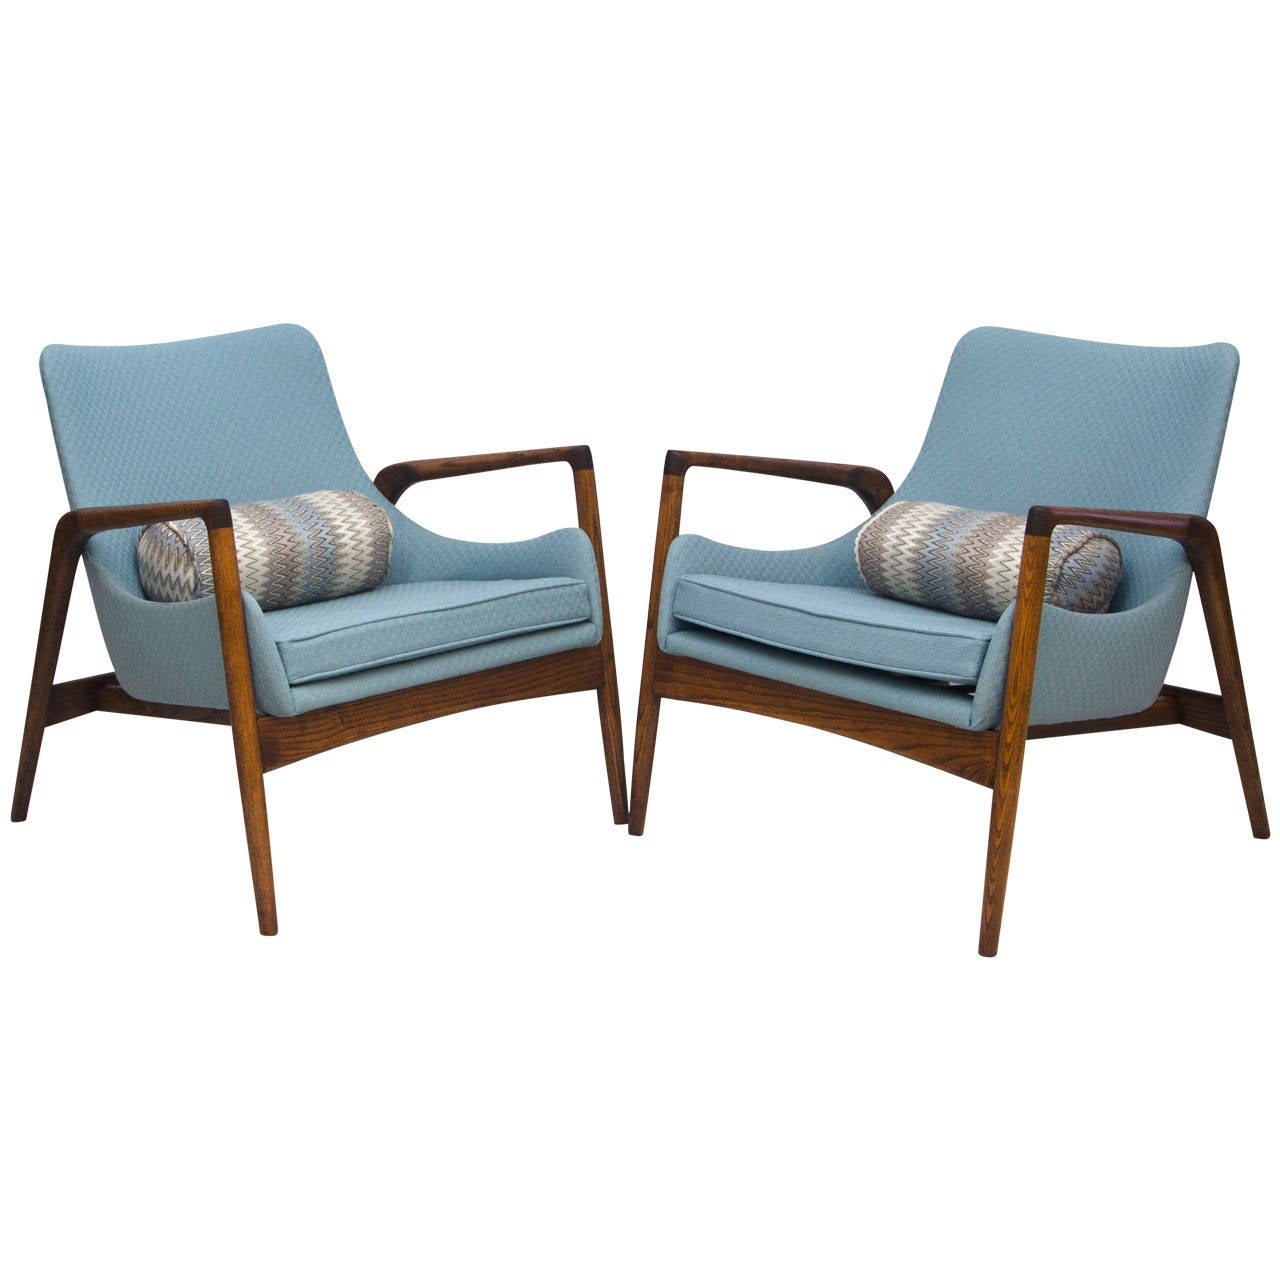 This sculptural pair of lounge chairs by ib kofod larsen is no longer - Mid Century Pair Of Danish Lounge Chairs Ib Kofod Larsen 1